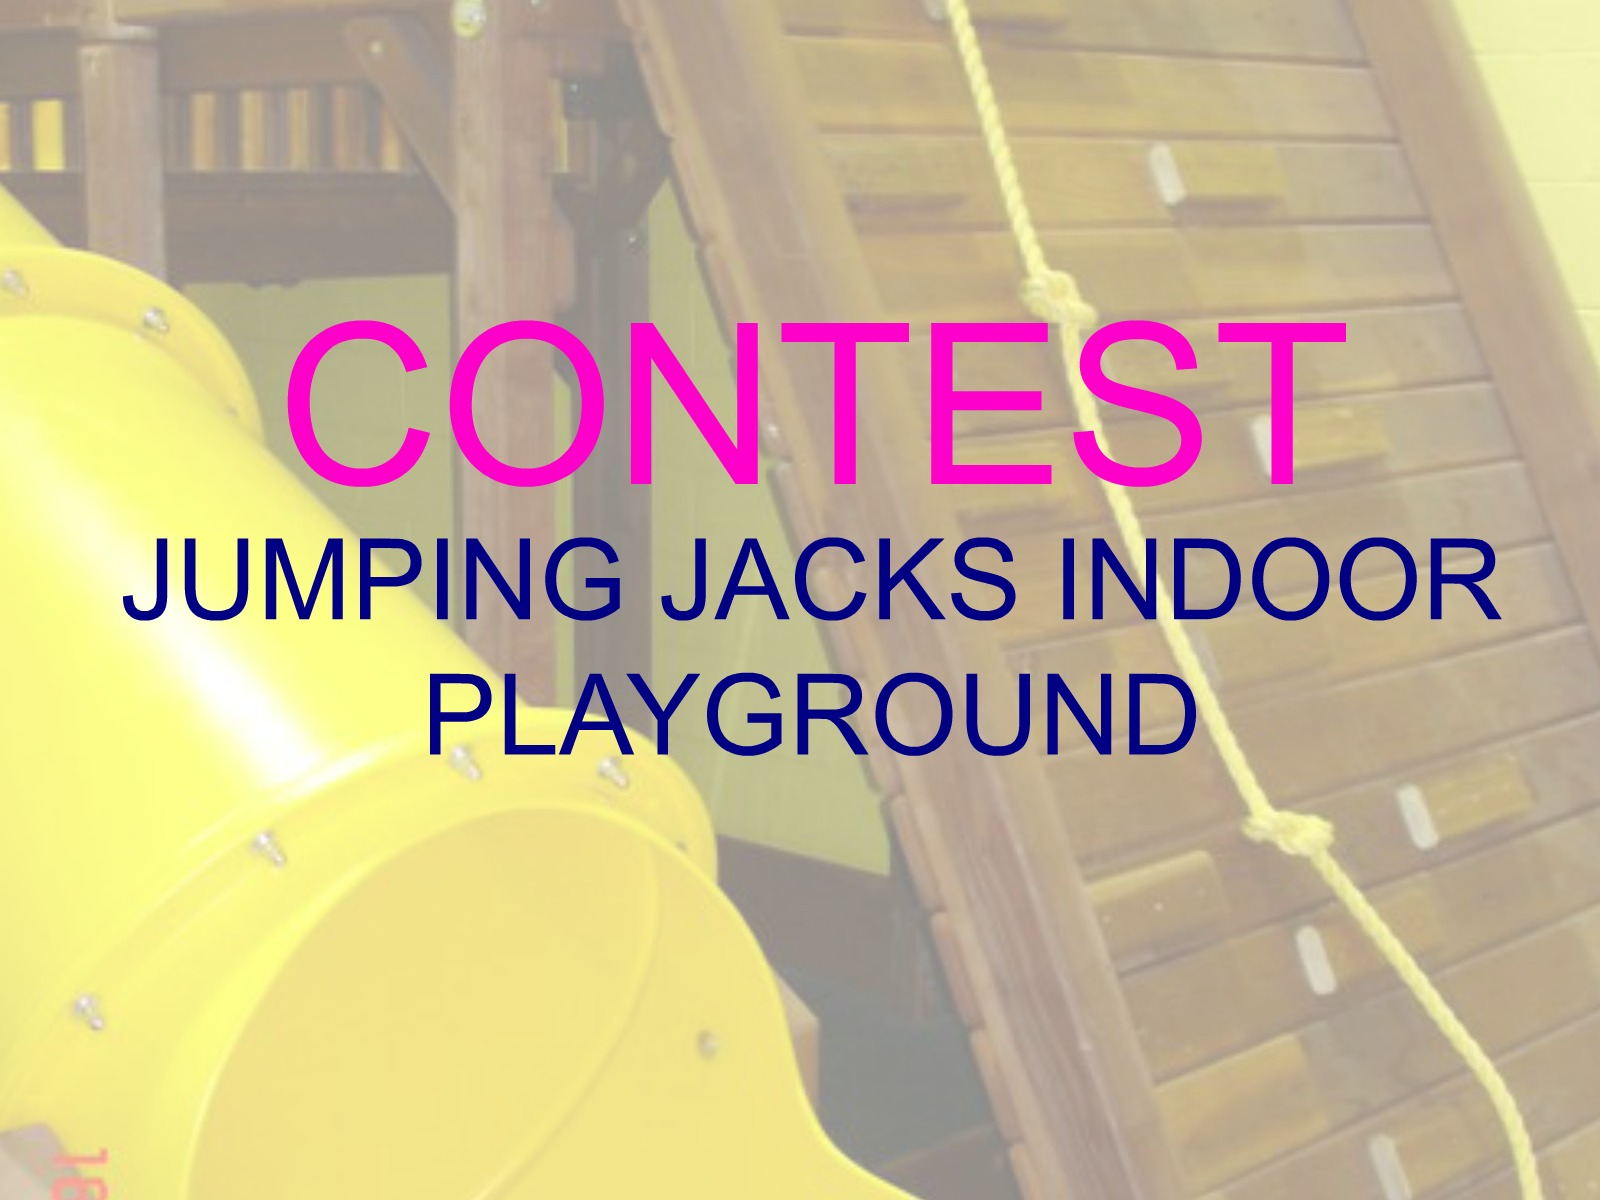 CONTEST: Jumping Jacks Indoor Playground